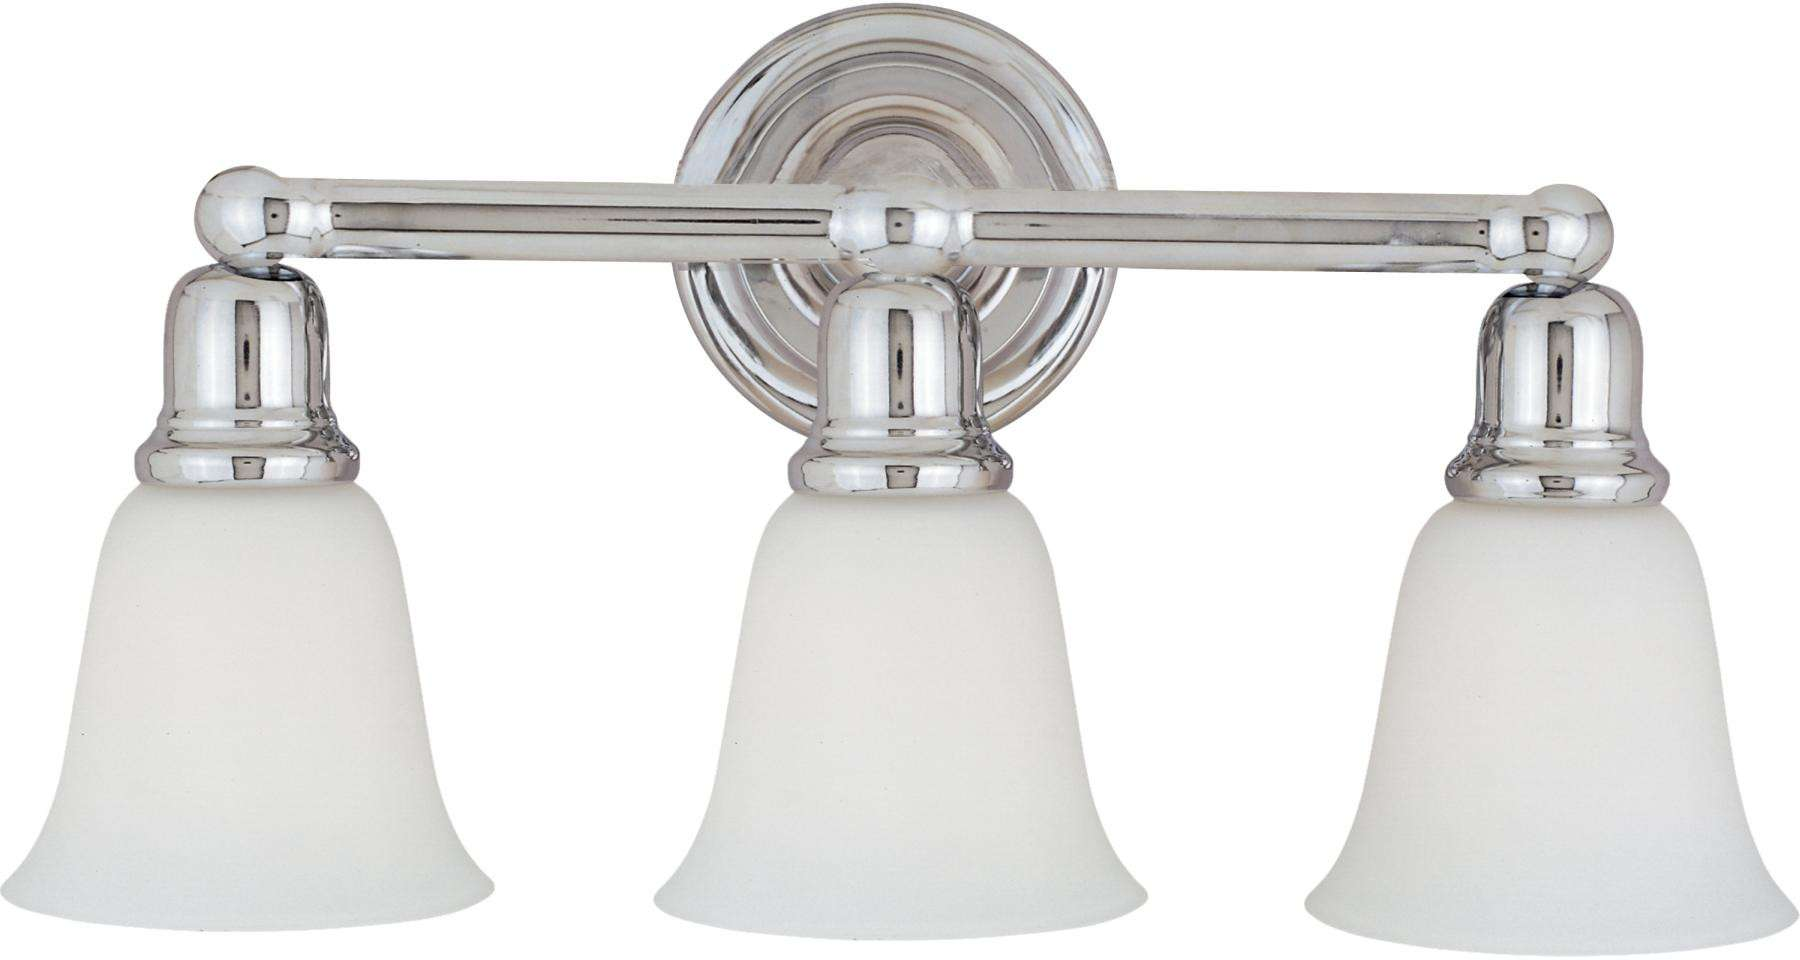 Maxim 11088WTPC Bel Air 3-Light Bath Vanity in Polished Chrome with White glass.